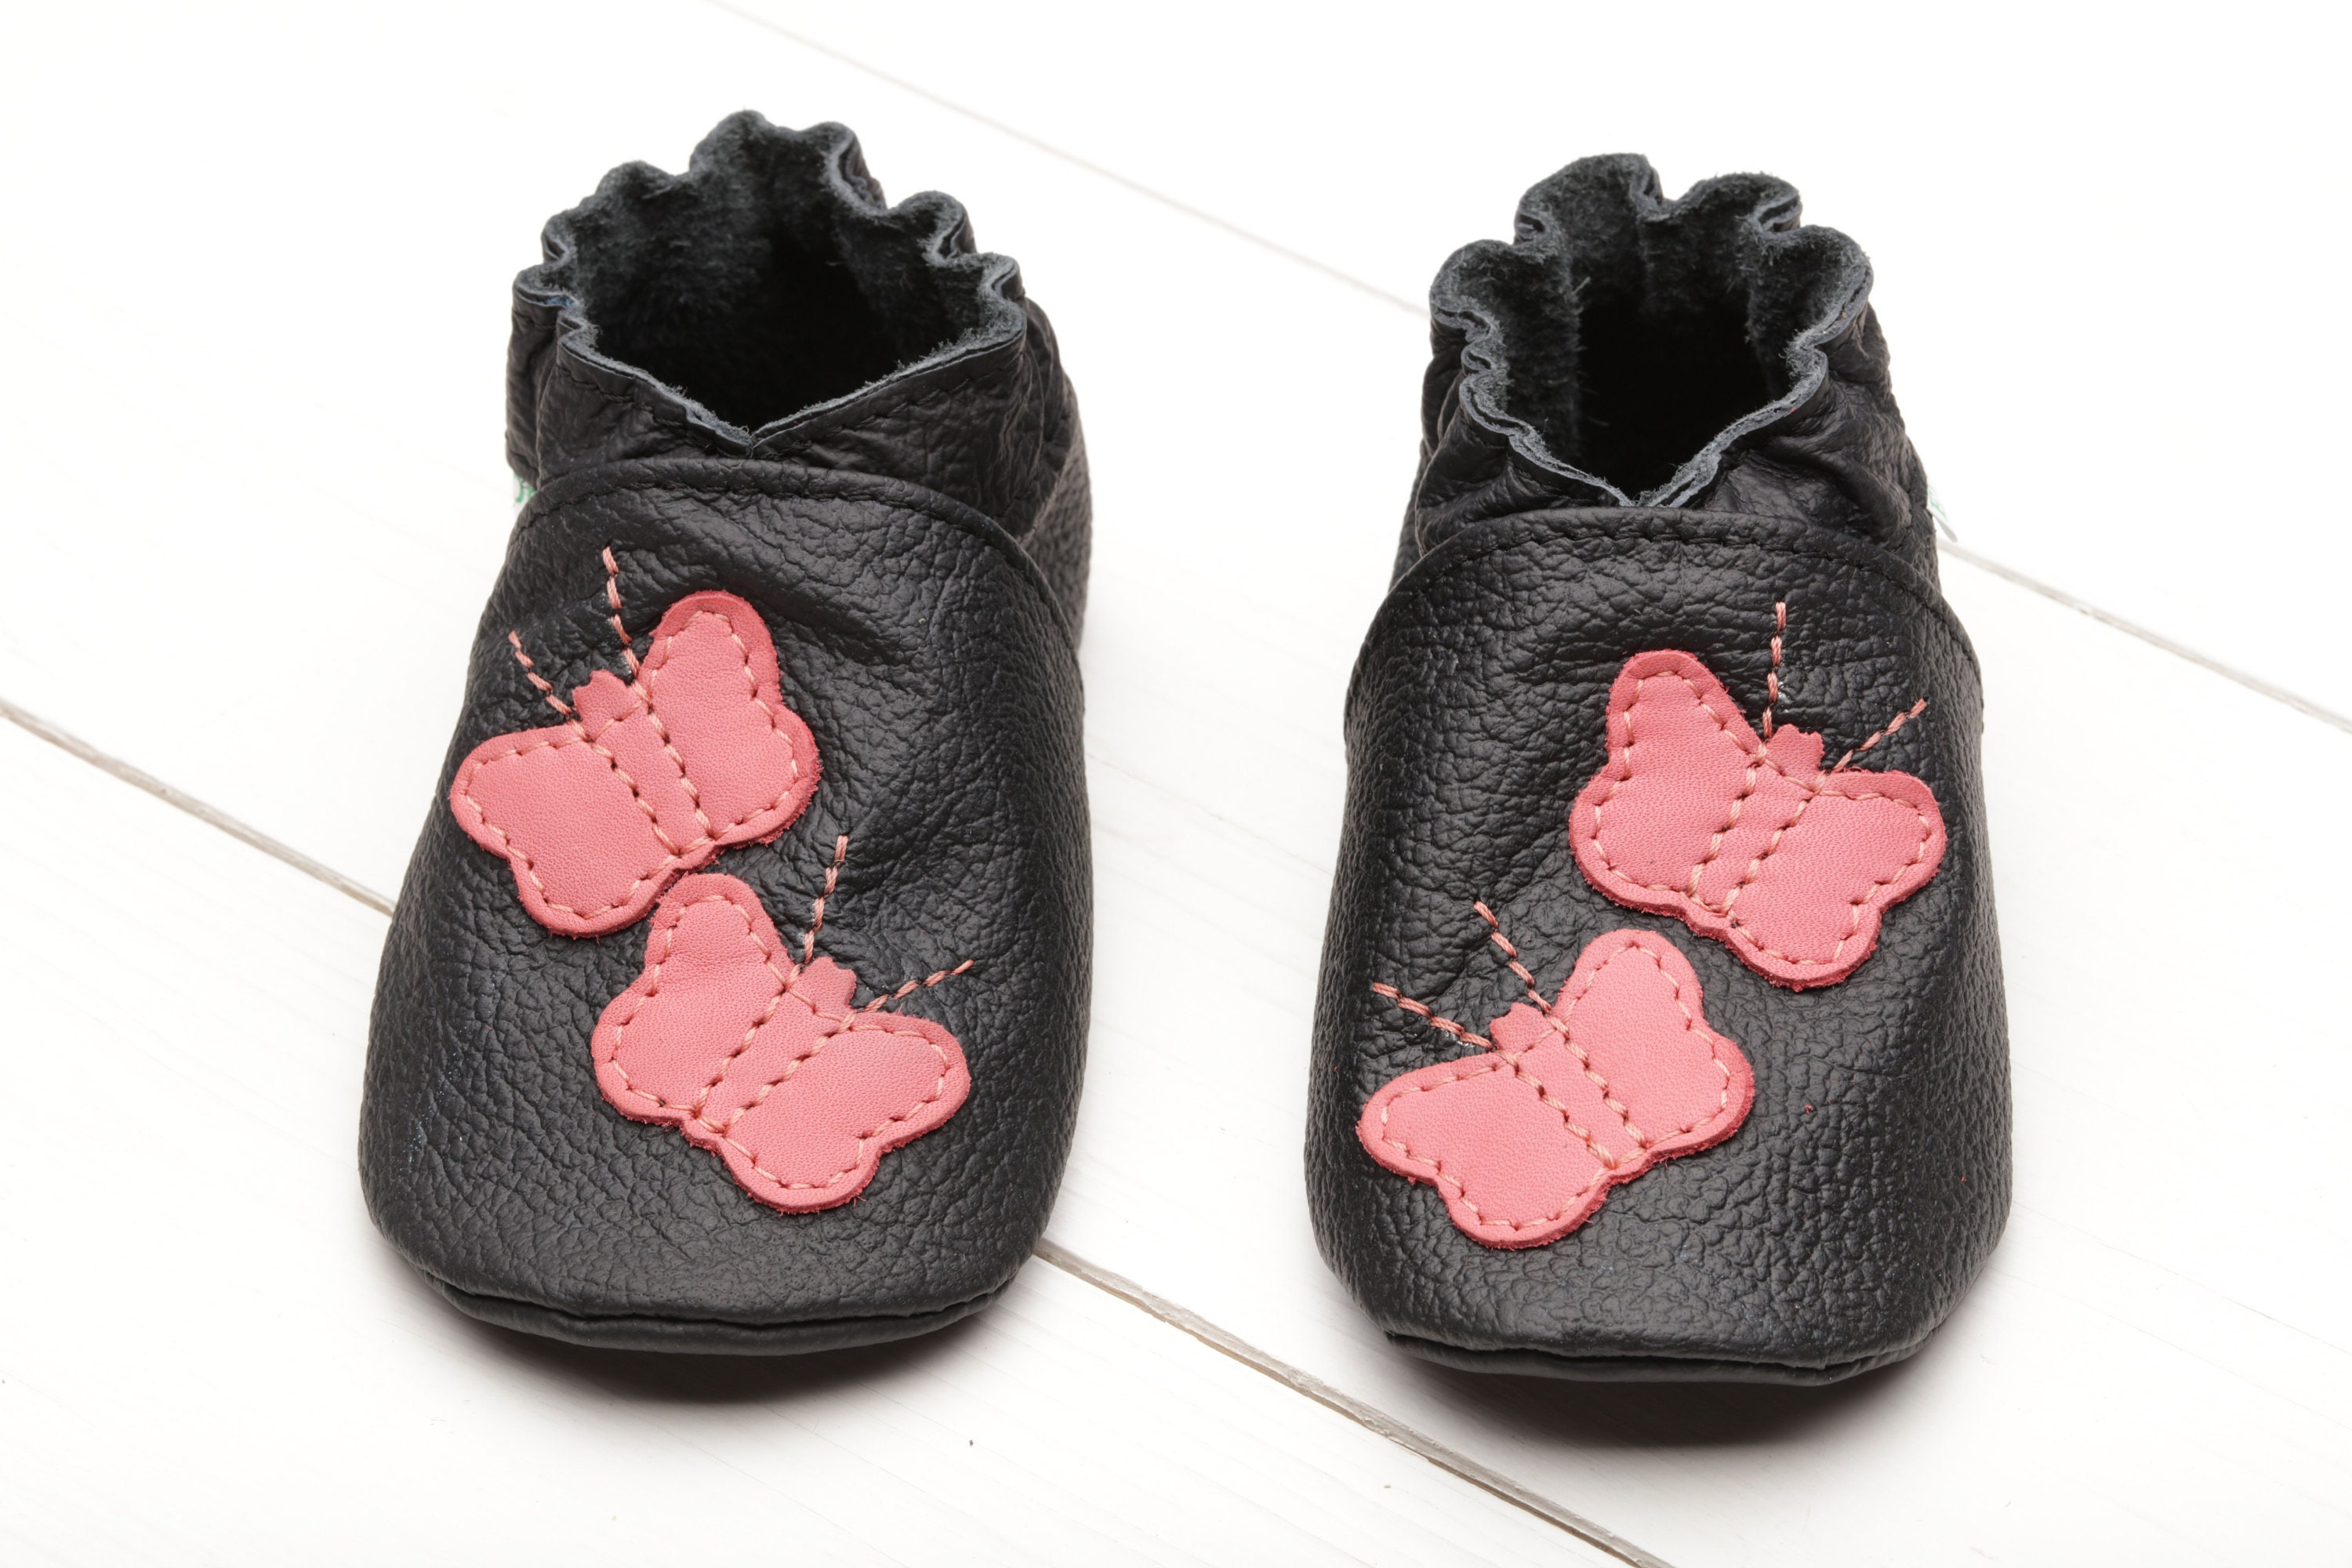 10148ee5058a8 Black Baby Shoes, Girls', Leather Baby Moccasins, Soft Sole Toddler  Slippers, Newborn Shoes, Pink Butterfly Baby Shower, Baby Gifts, Evtodi